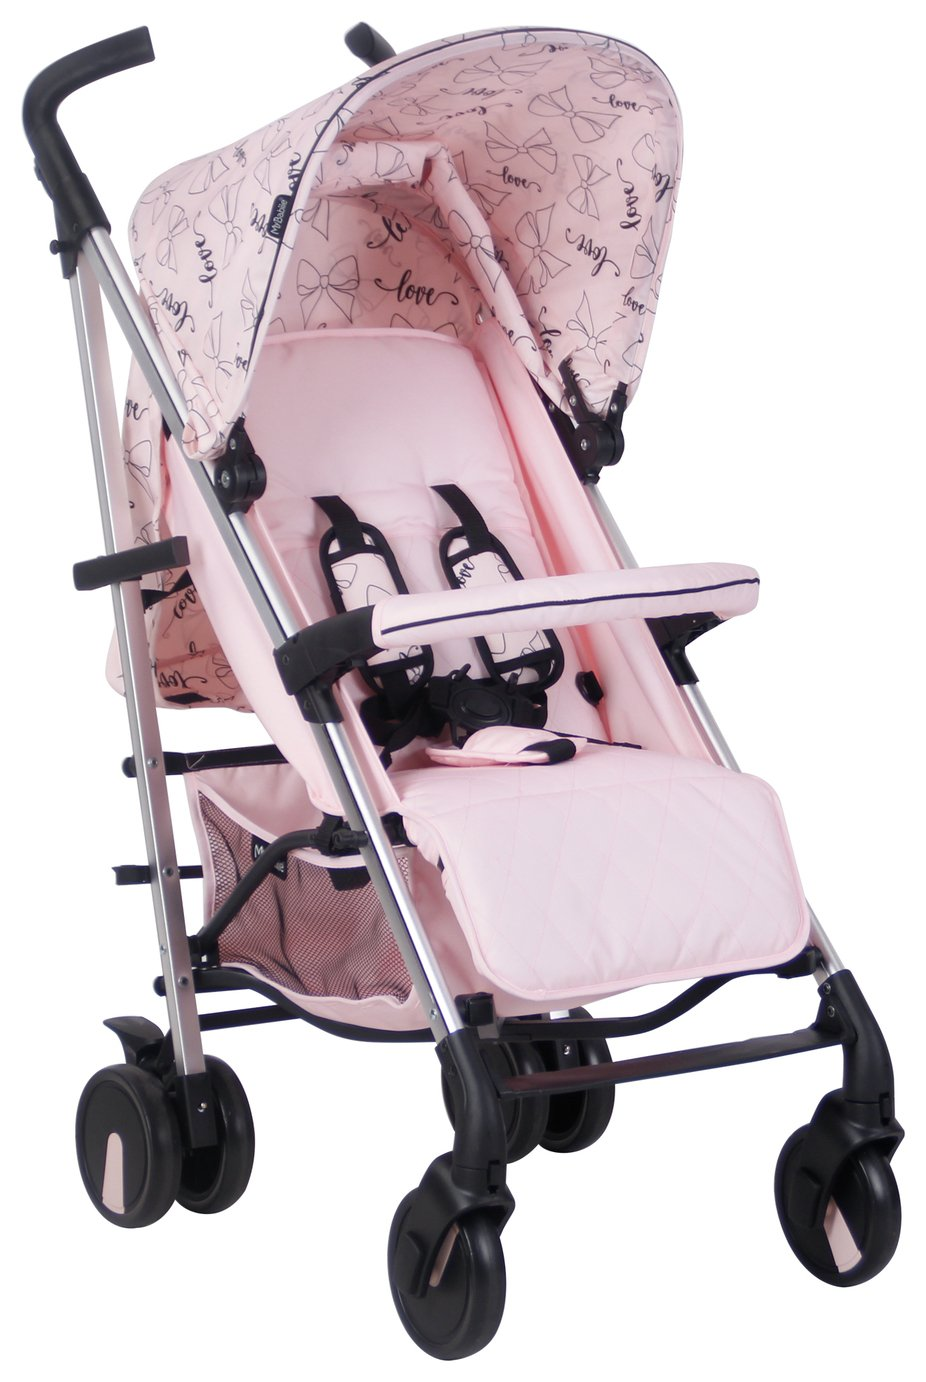 My Babiie Abbey Clancy MB51 Bows Stroller - Pink